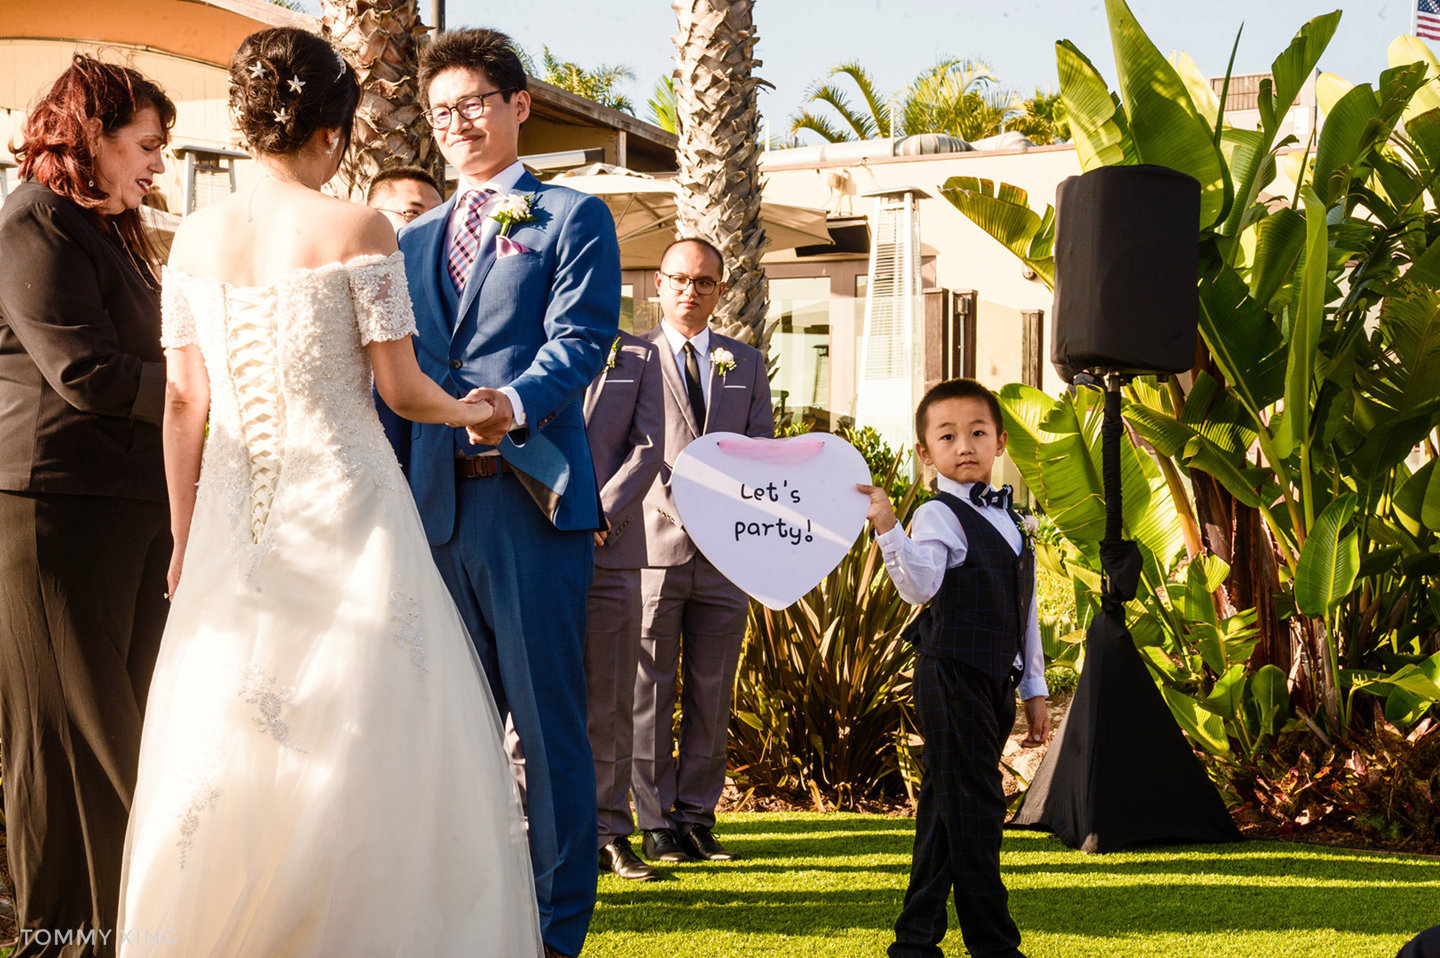 Paradise Point Resort Wedding Xiaolu & Bin San Diego 圣地亚哥婚礼摄影跟拍 Tommy Xing Photography 洛杉矶婚礼婚纱照摄影师 129.jpg